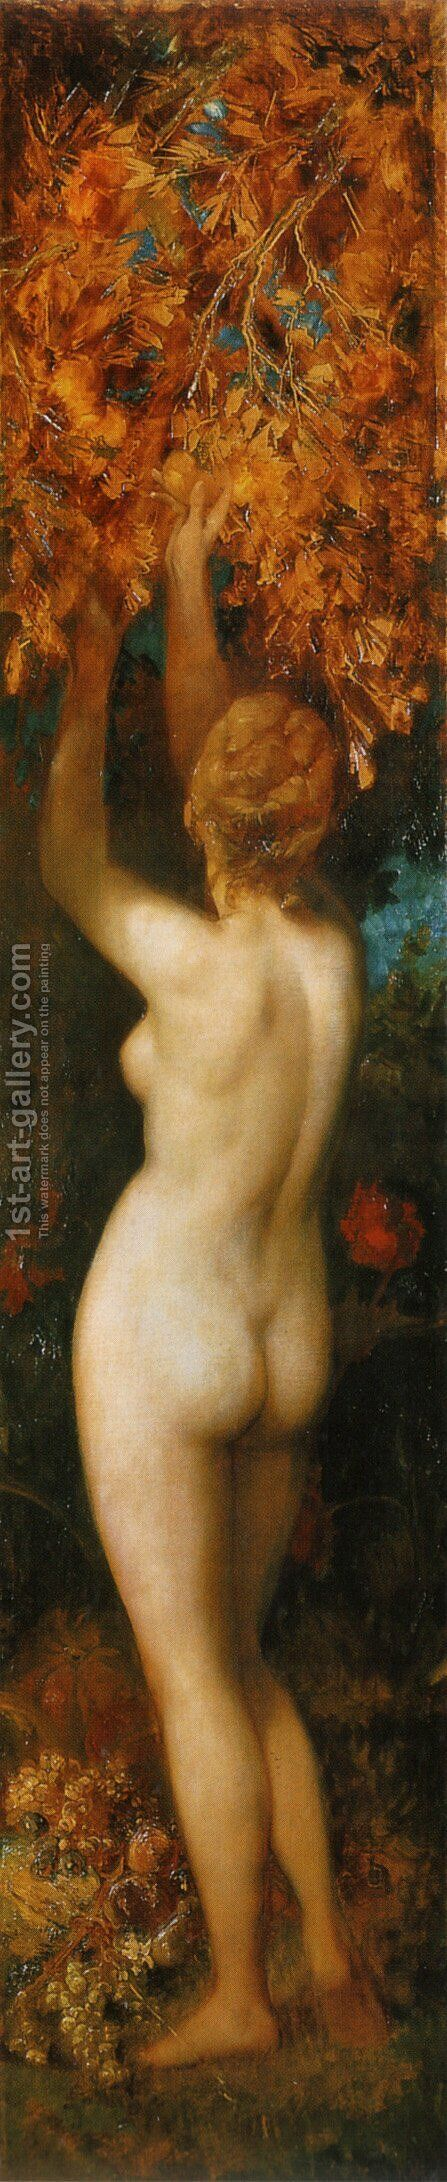 Die Fünf Sinne: Geschmack (The Five Senses: Tasting) by Hans Makart - Reproduction Oil Painting